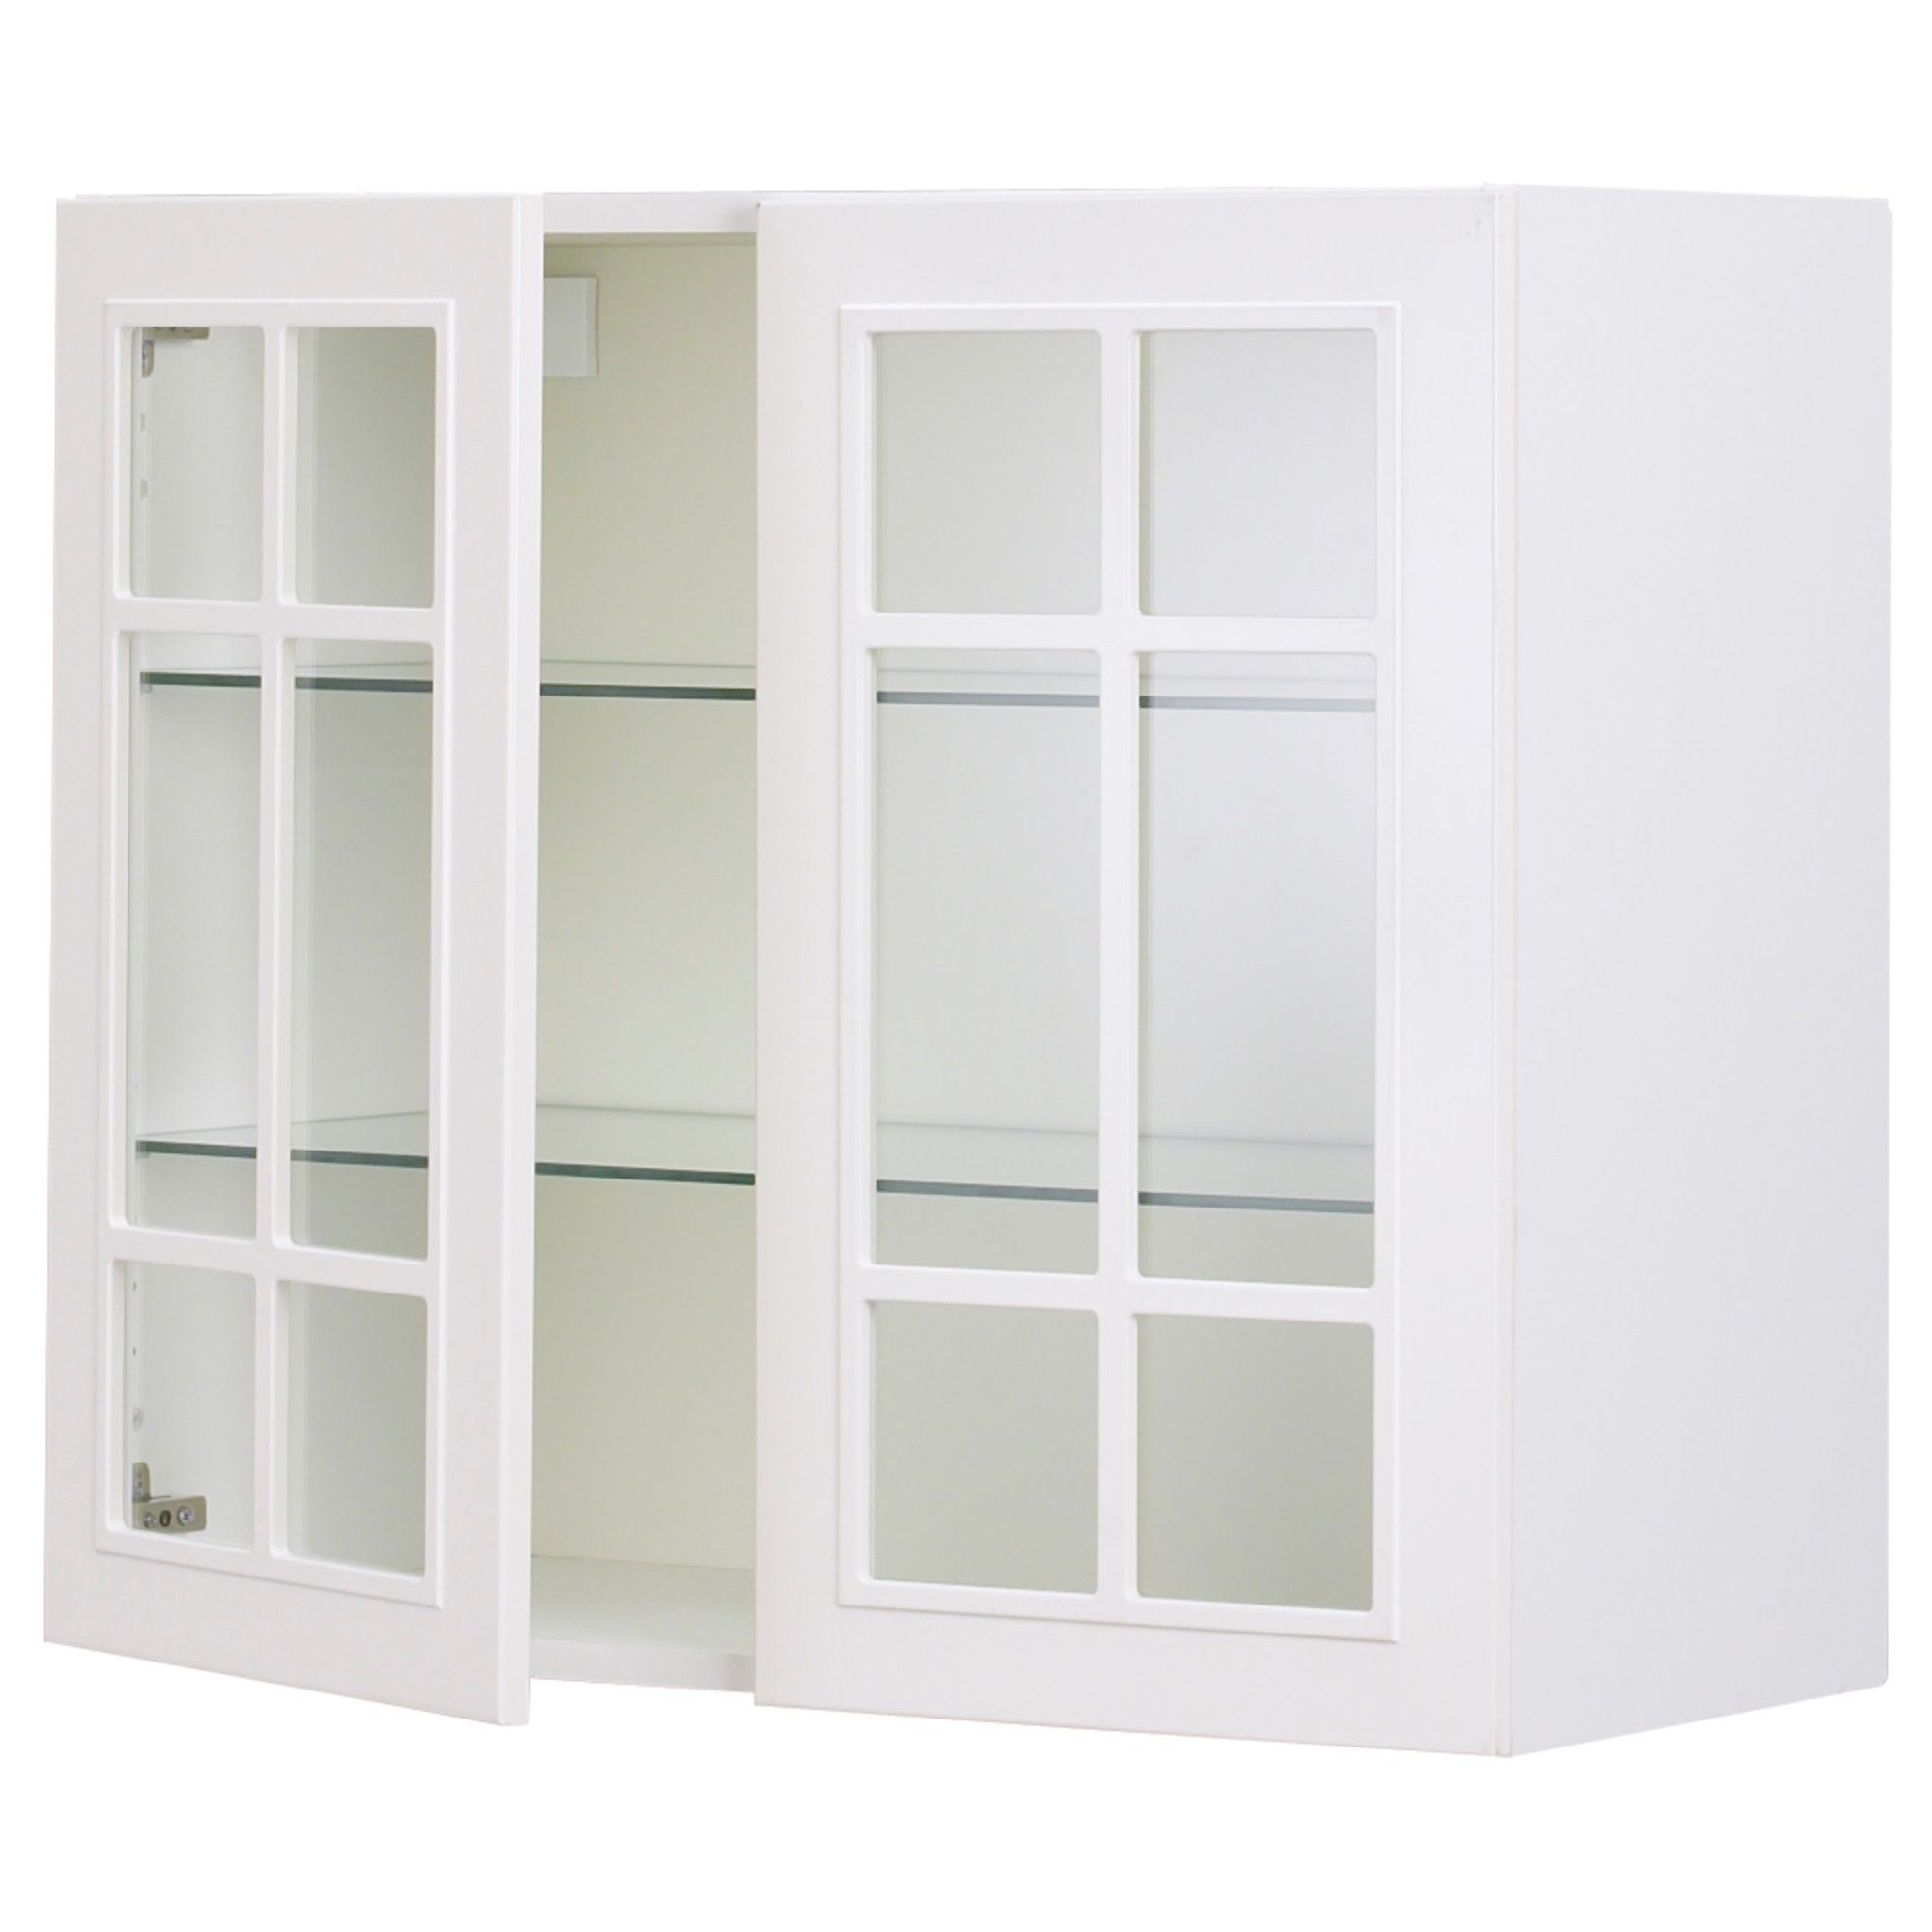 215 30 X 30 Glass Front Wall Cabinet Akurum Wall